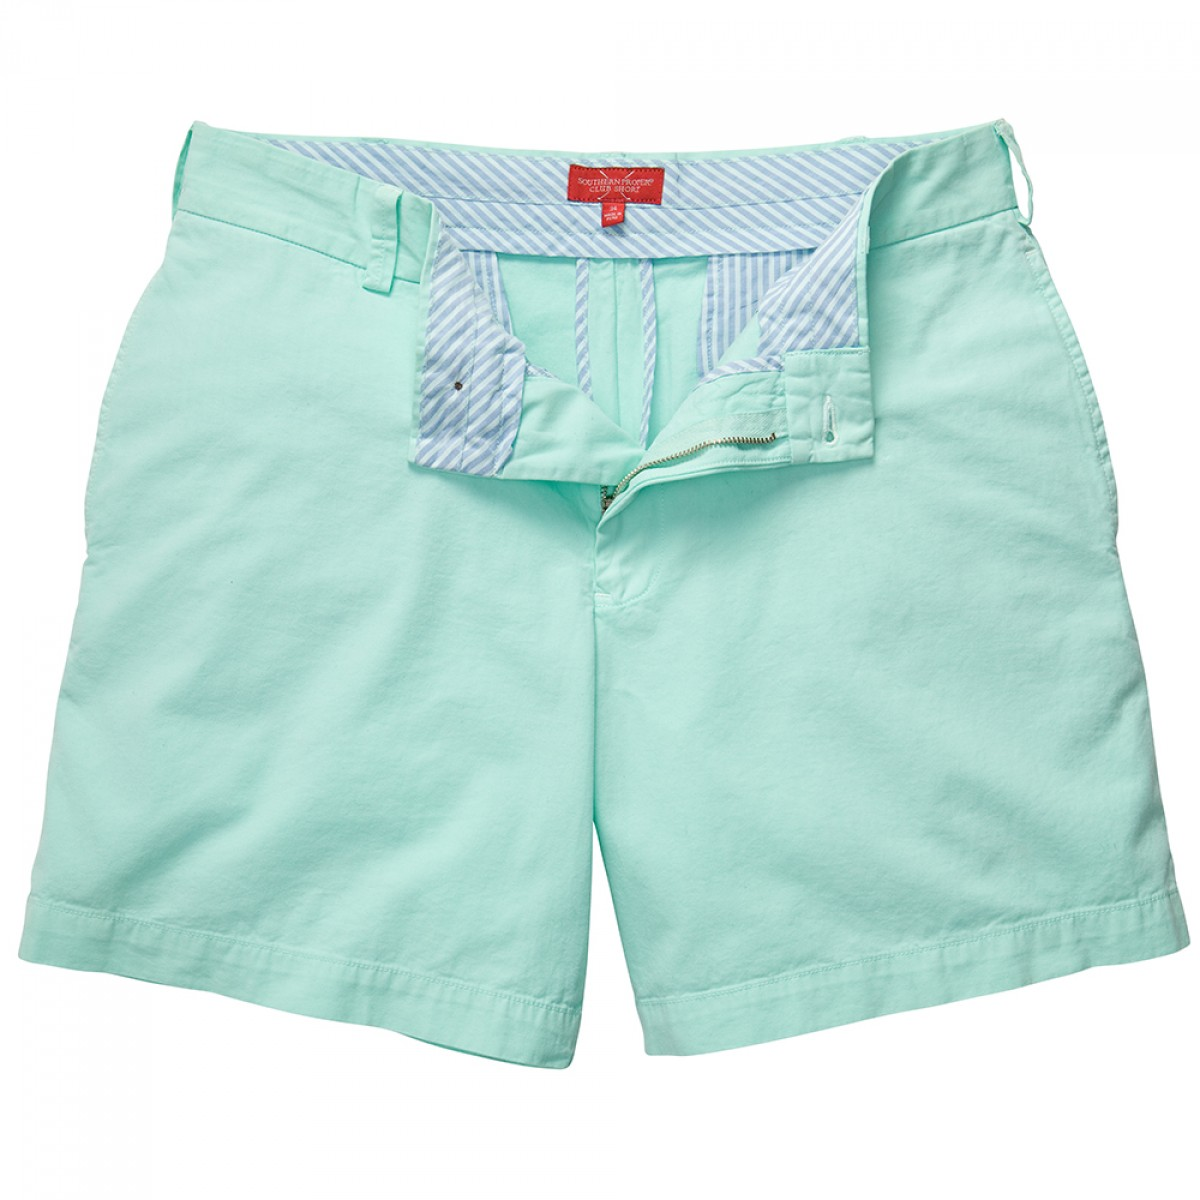 Club Short - Seafoam